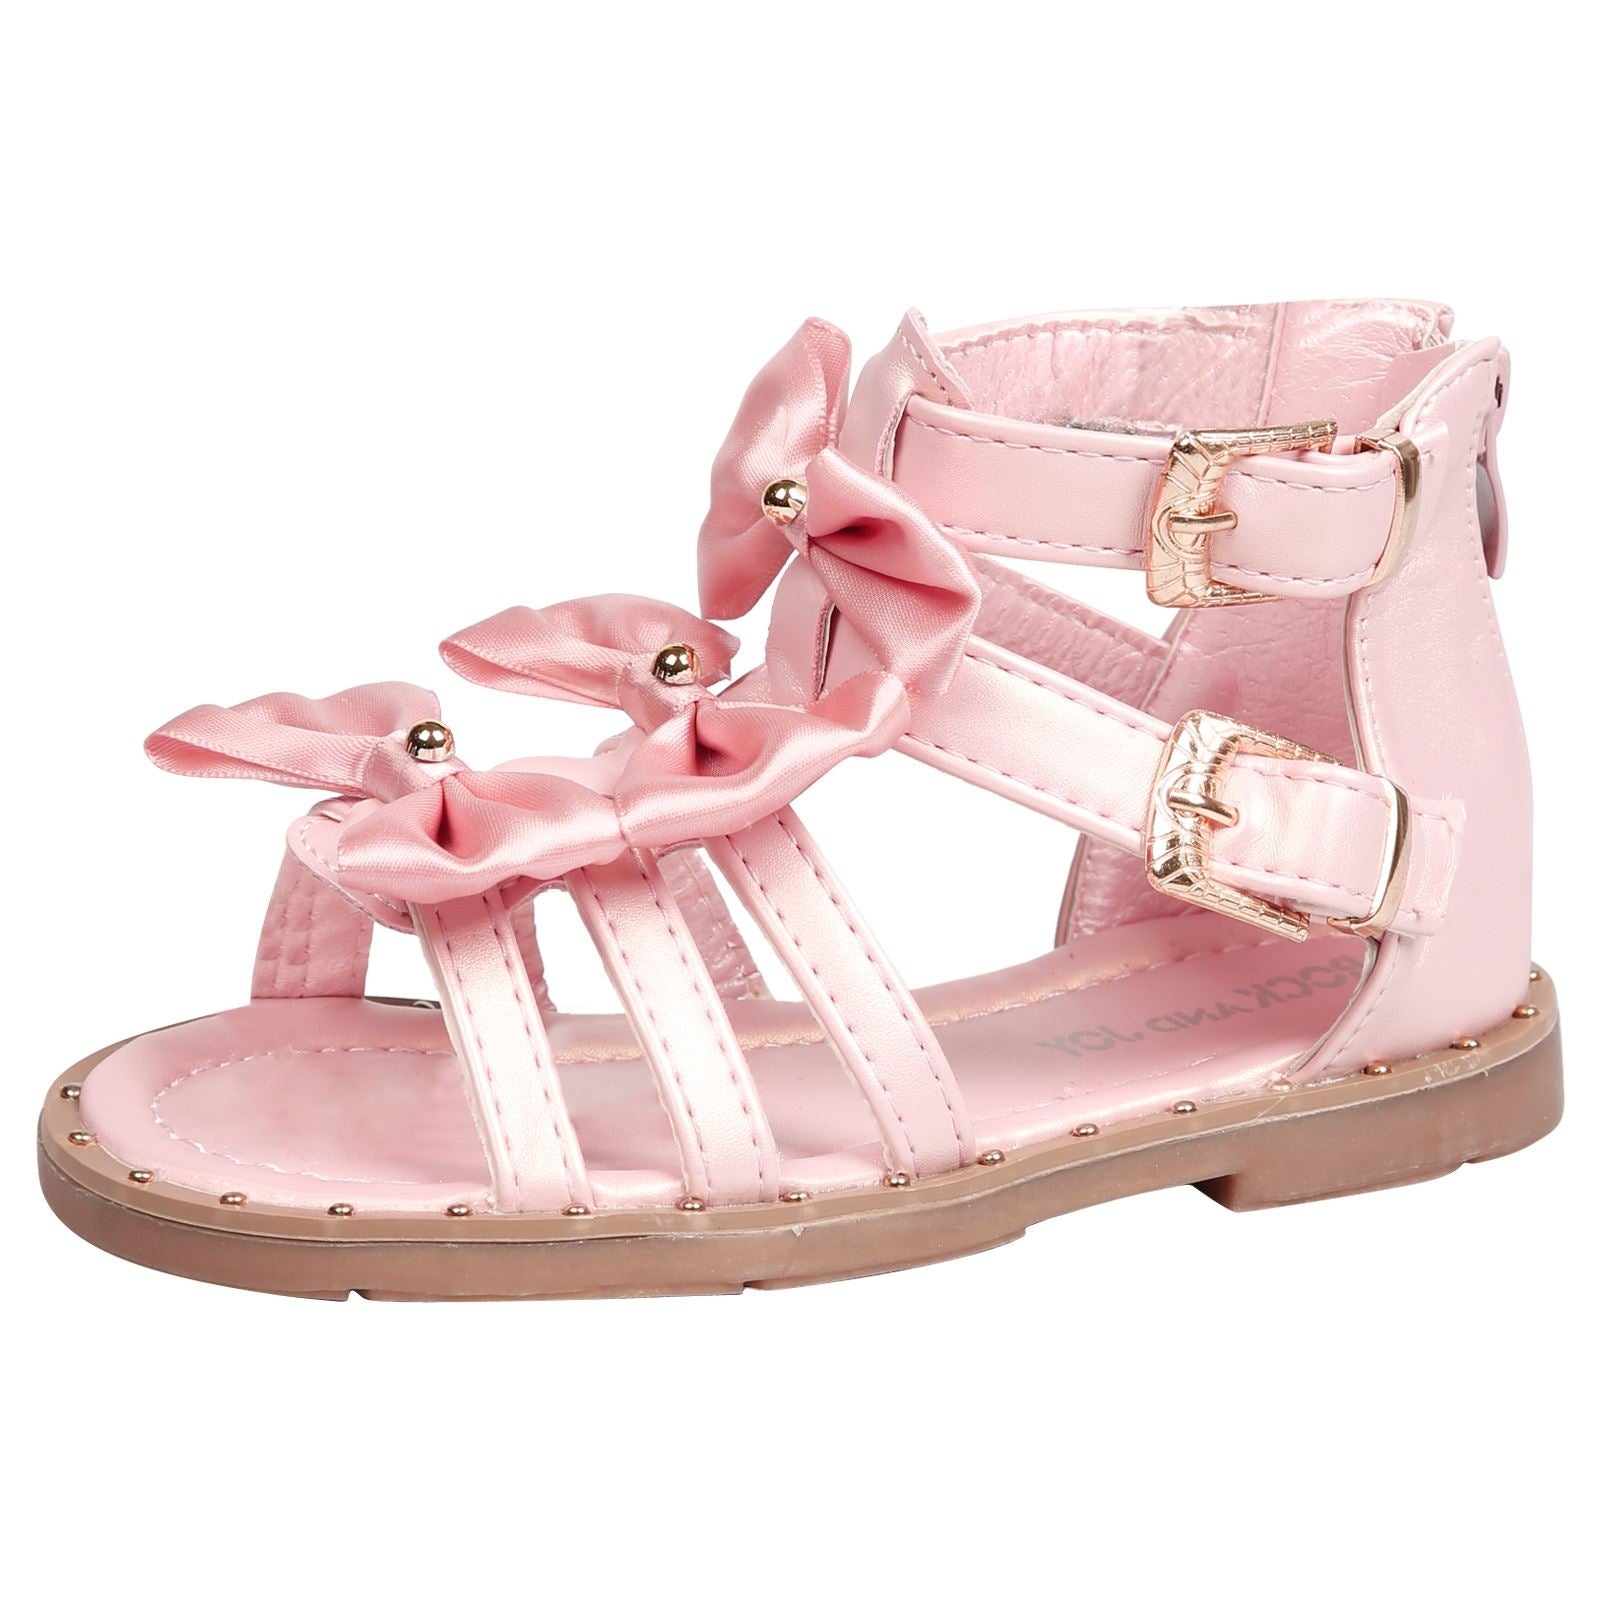 Larissa Girls Satin Bow Detail Gladiator Sandals in Pink Faux Leather - Feet First Fashion